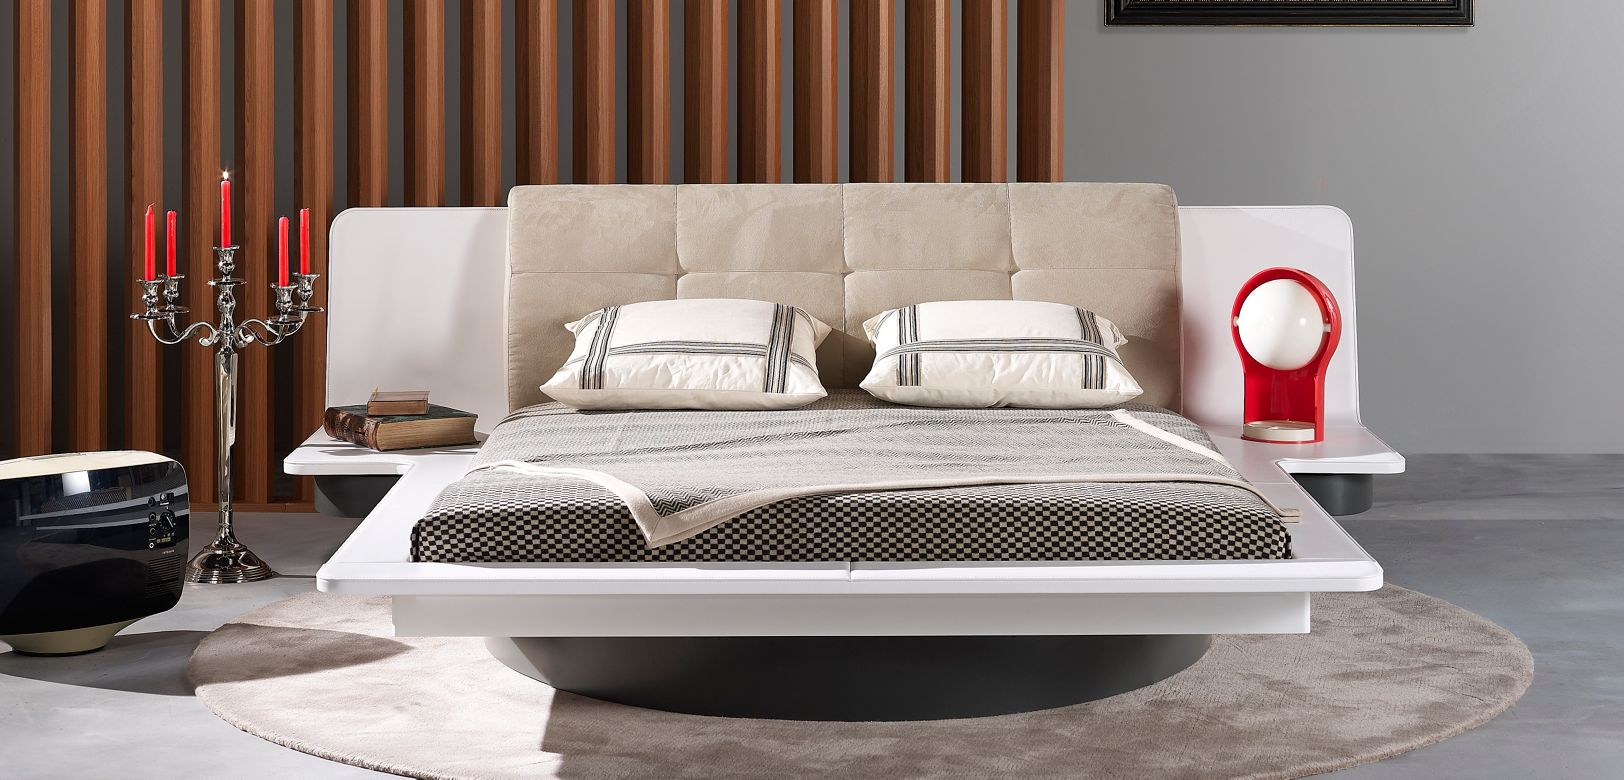 Bagatelle bed with bedside tables roche bobois for Roche bobois chambre